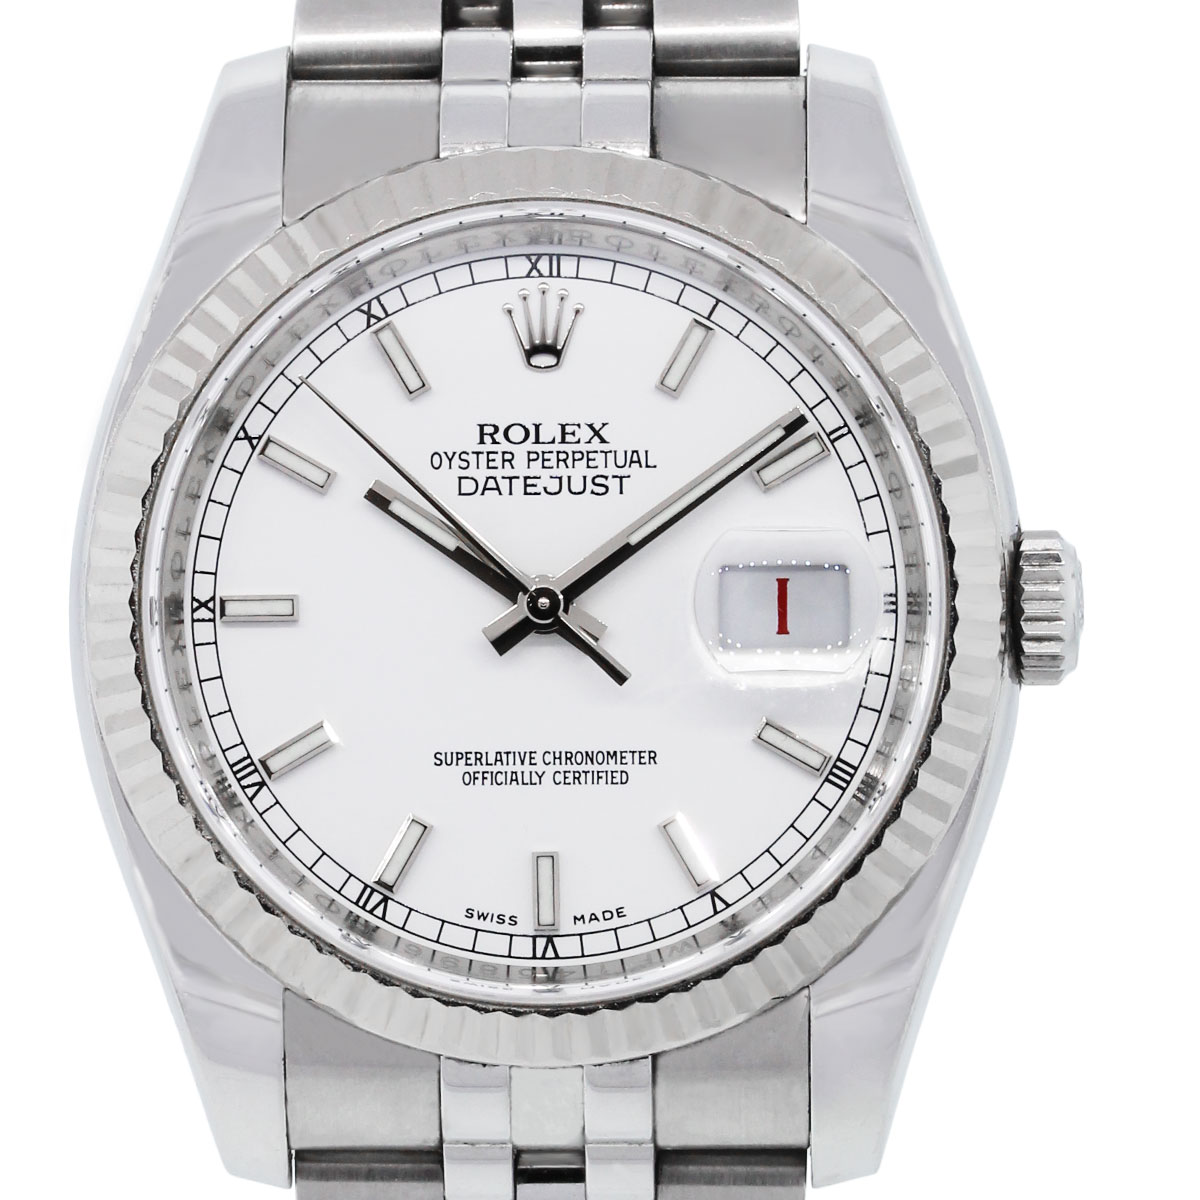 Rolex 16234 Datejust White Dial Stainless Steel Watch